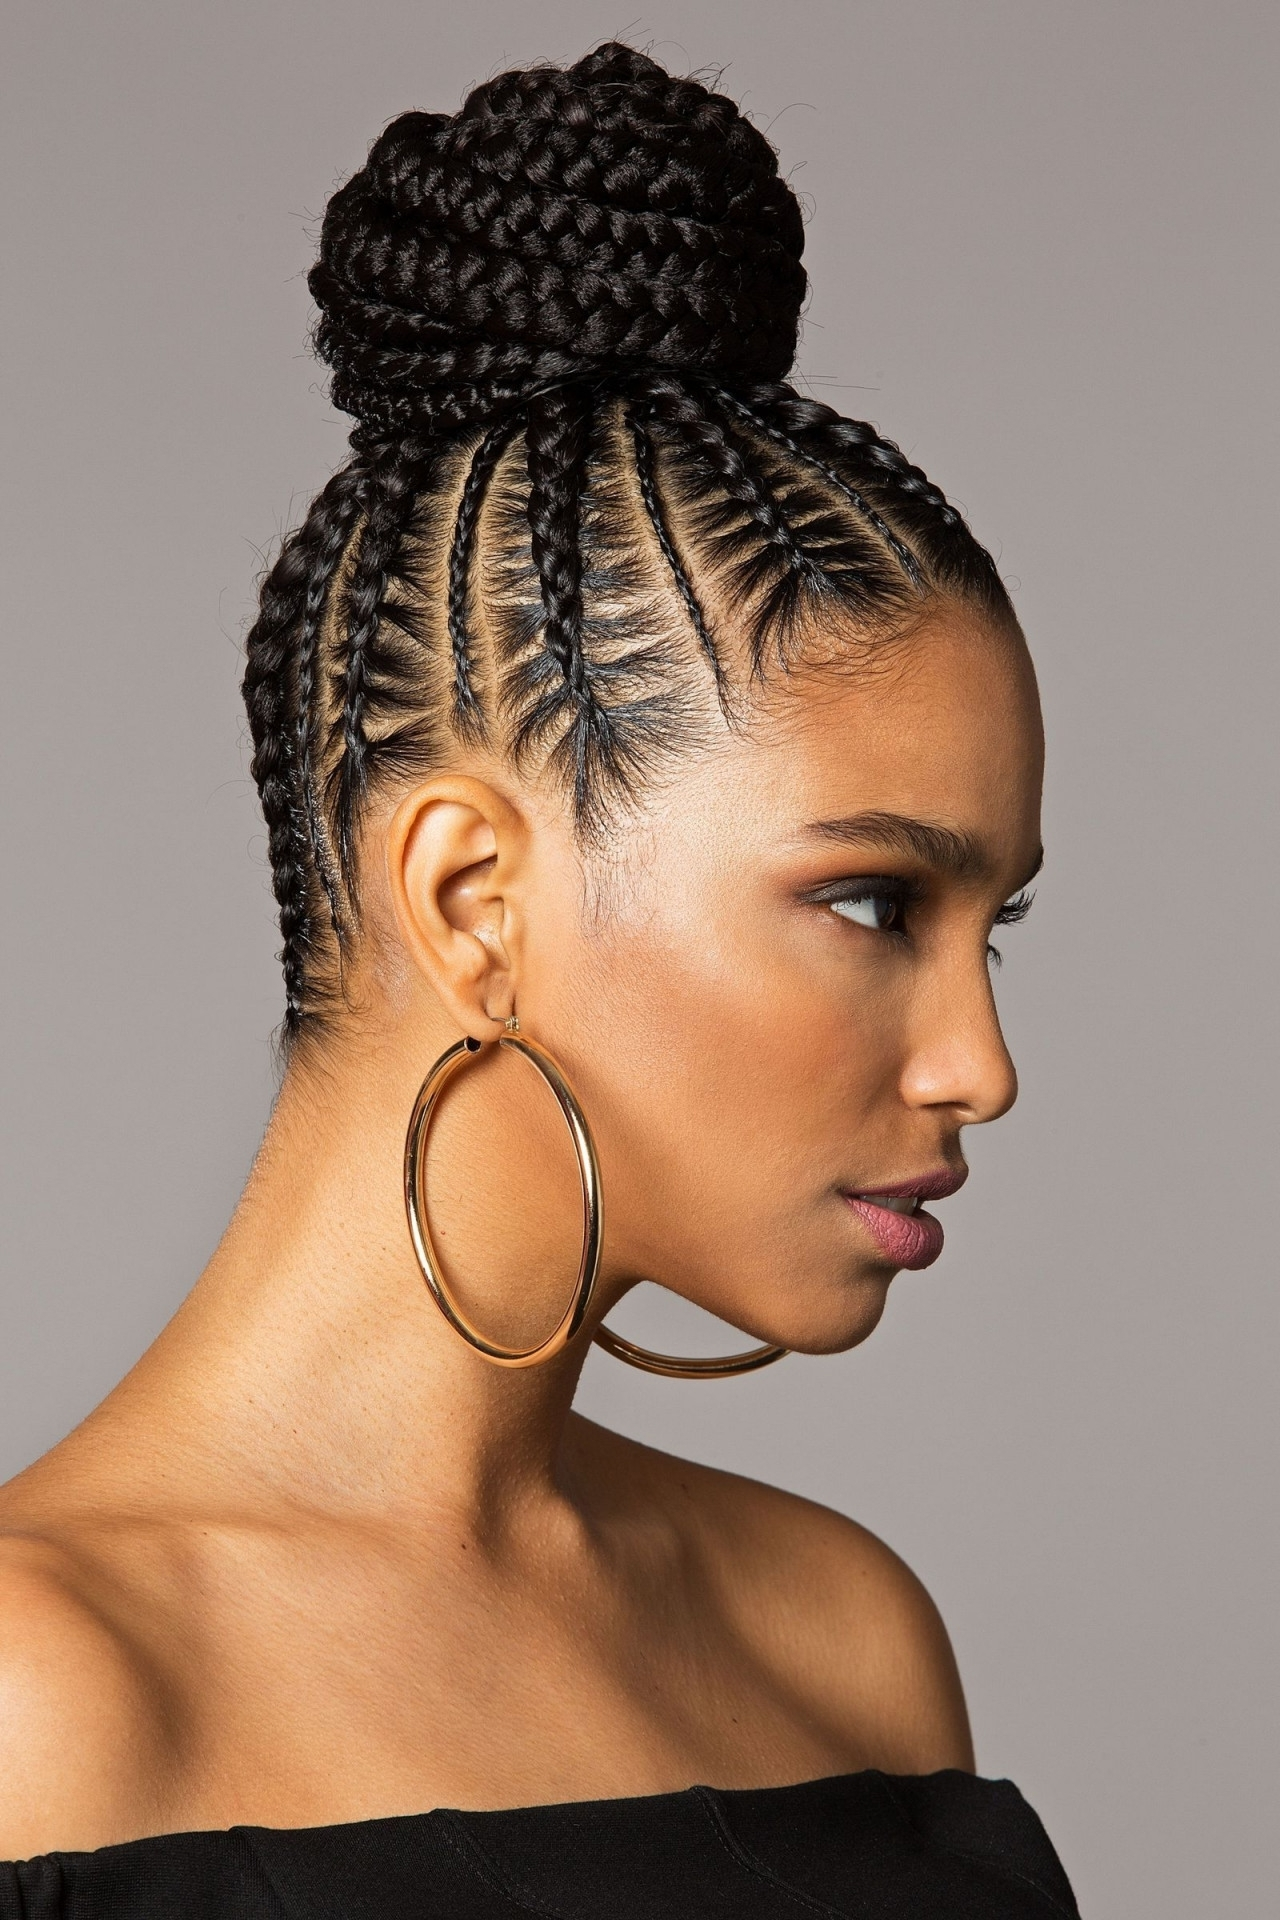 Cornrow Hairstyles For Short Natural Hair Unique You Re Going To Inside Most Current Cornrows Hairstyles For Short Natural Hair (View 8 of 15)